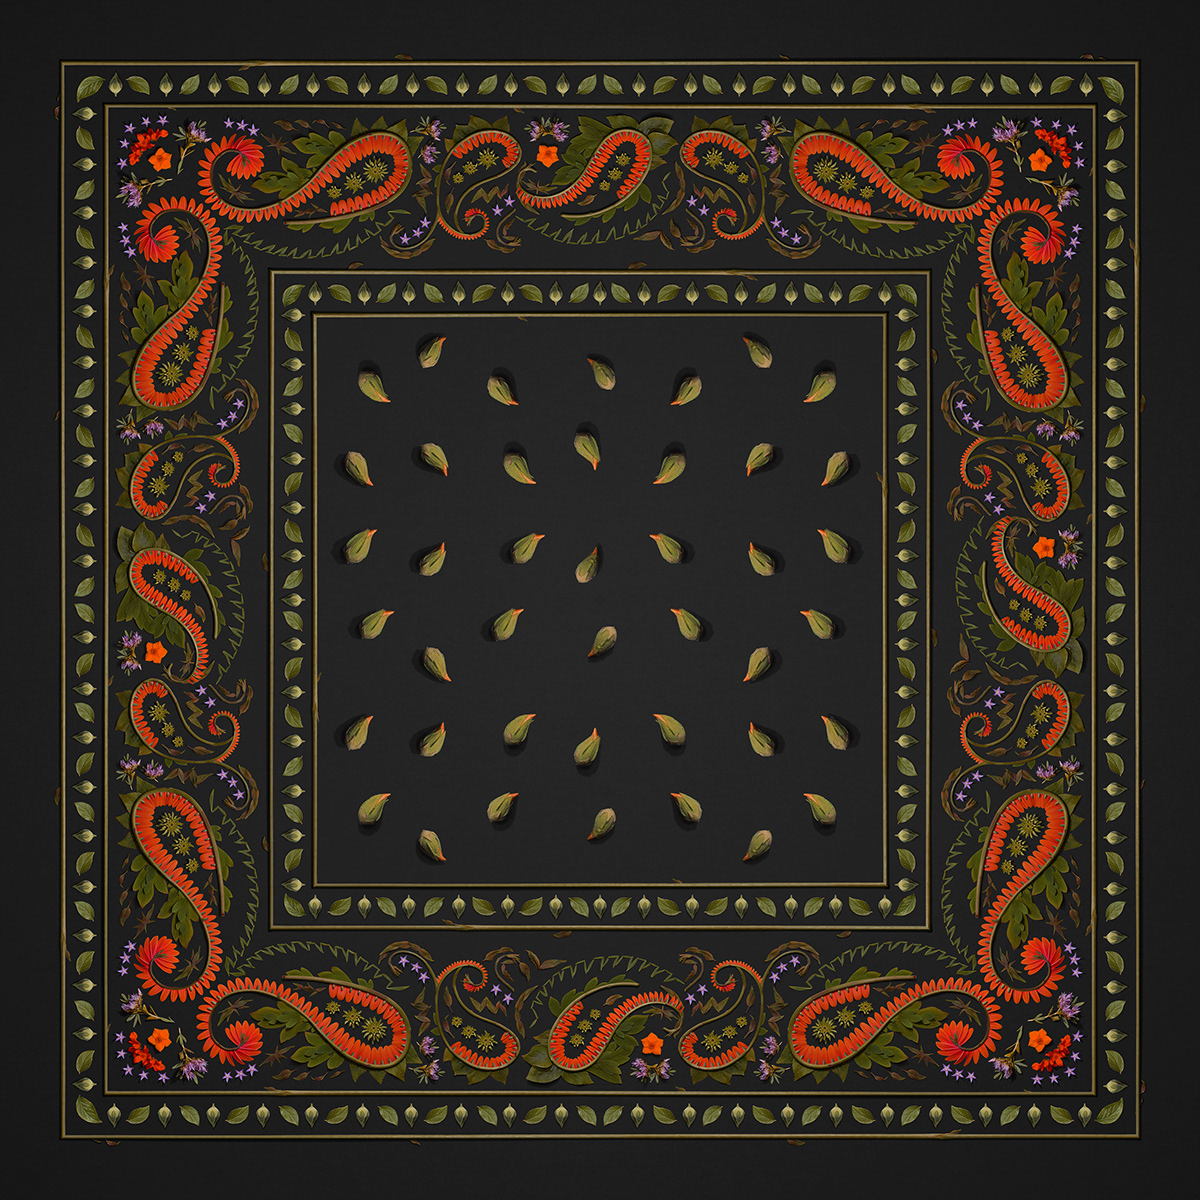 Image may contain: rug, pattern and motif